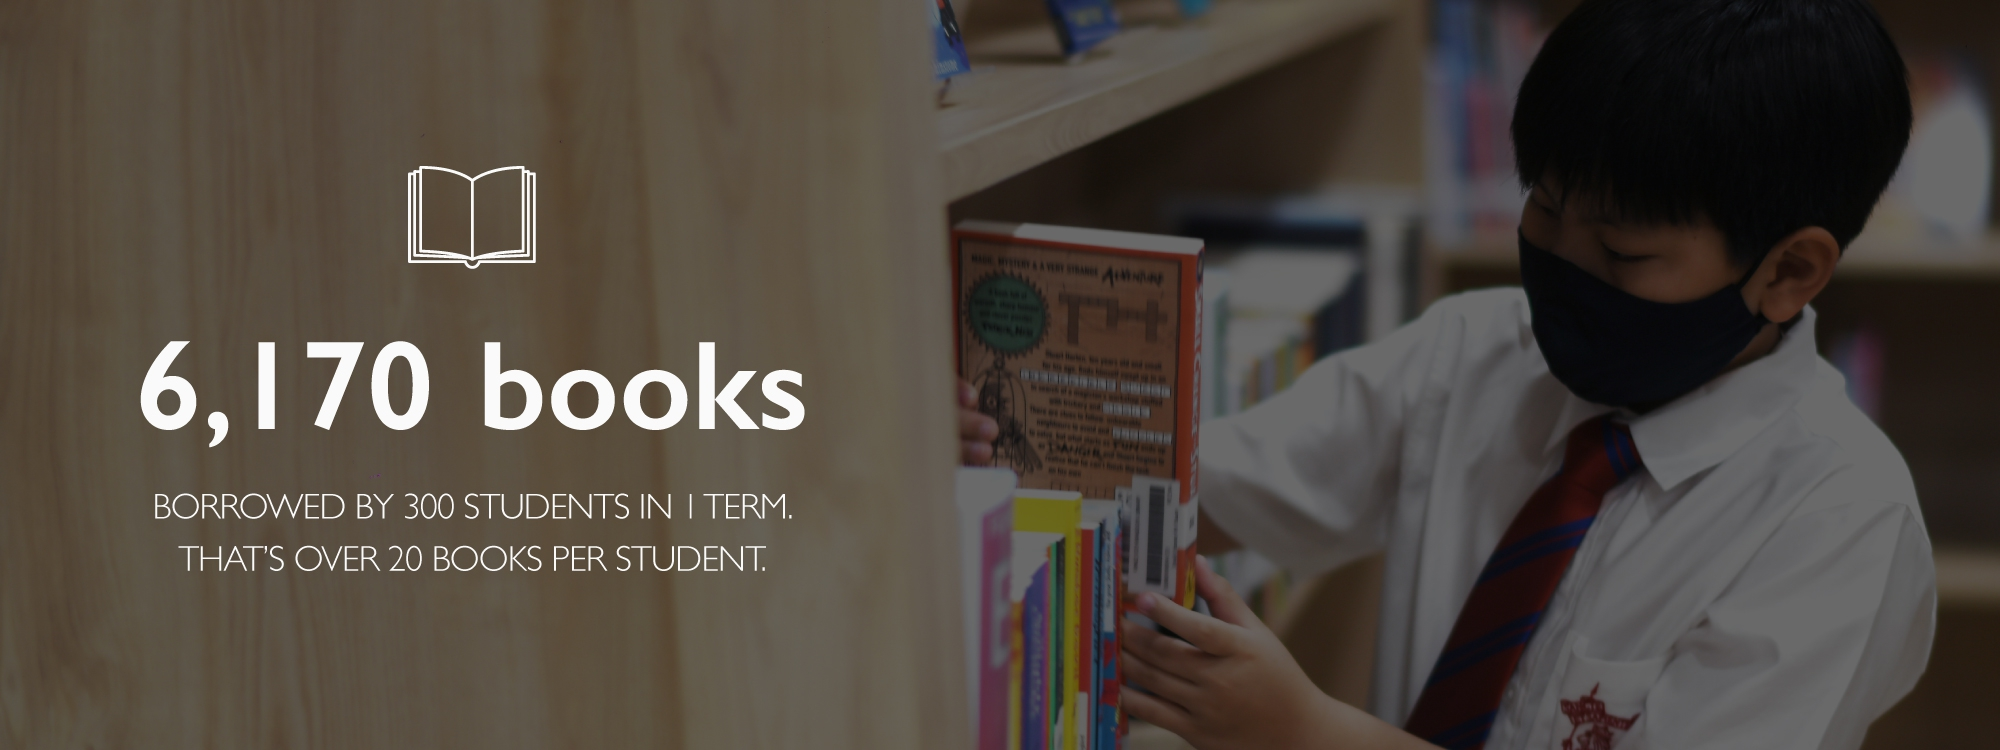 King's Bangkok enriches the world of learning through reading.